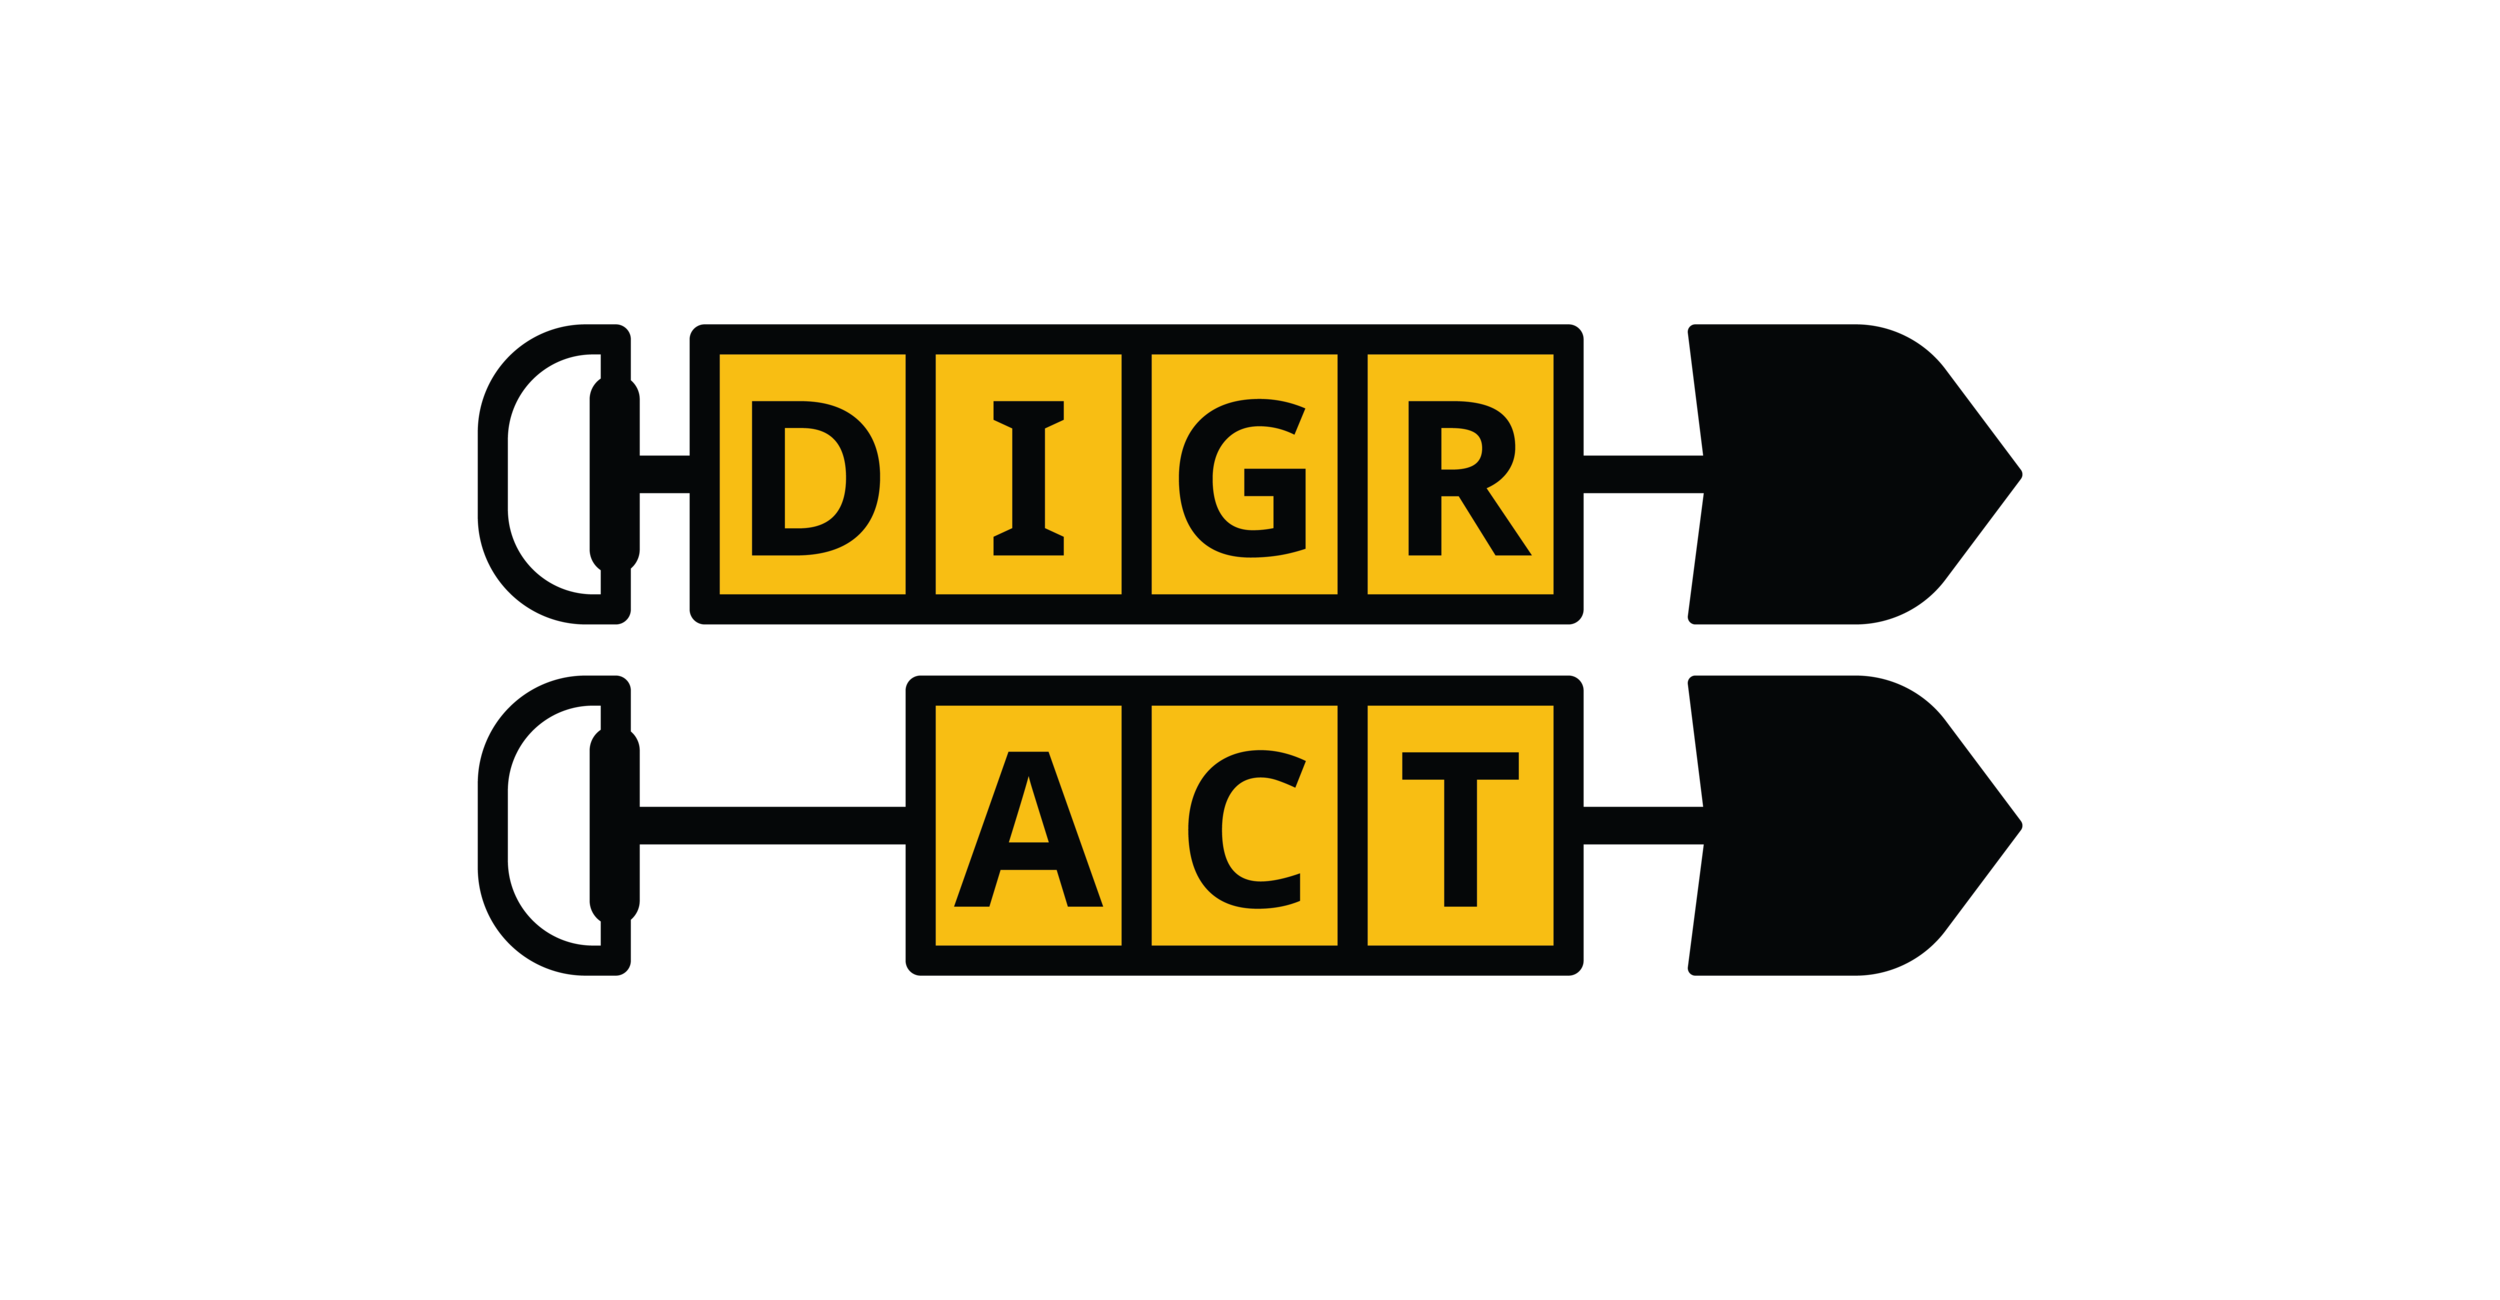 [P] DIGR-ACT_Stacked Logo - FULL - GOLD.png